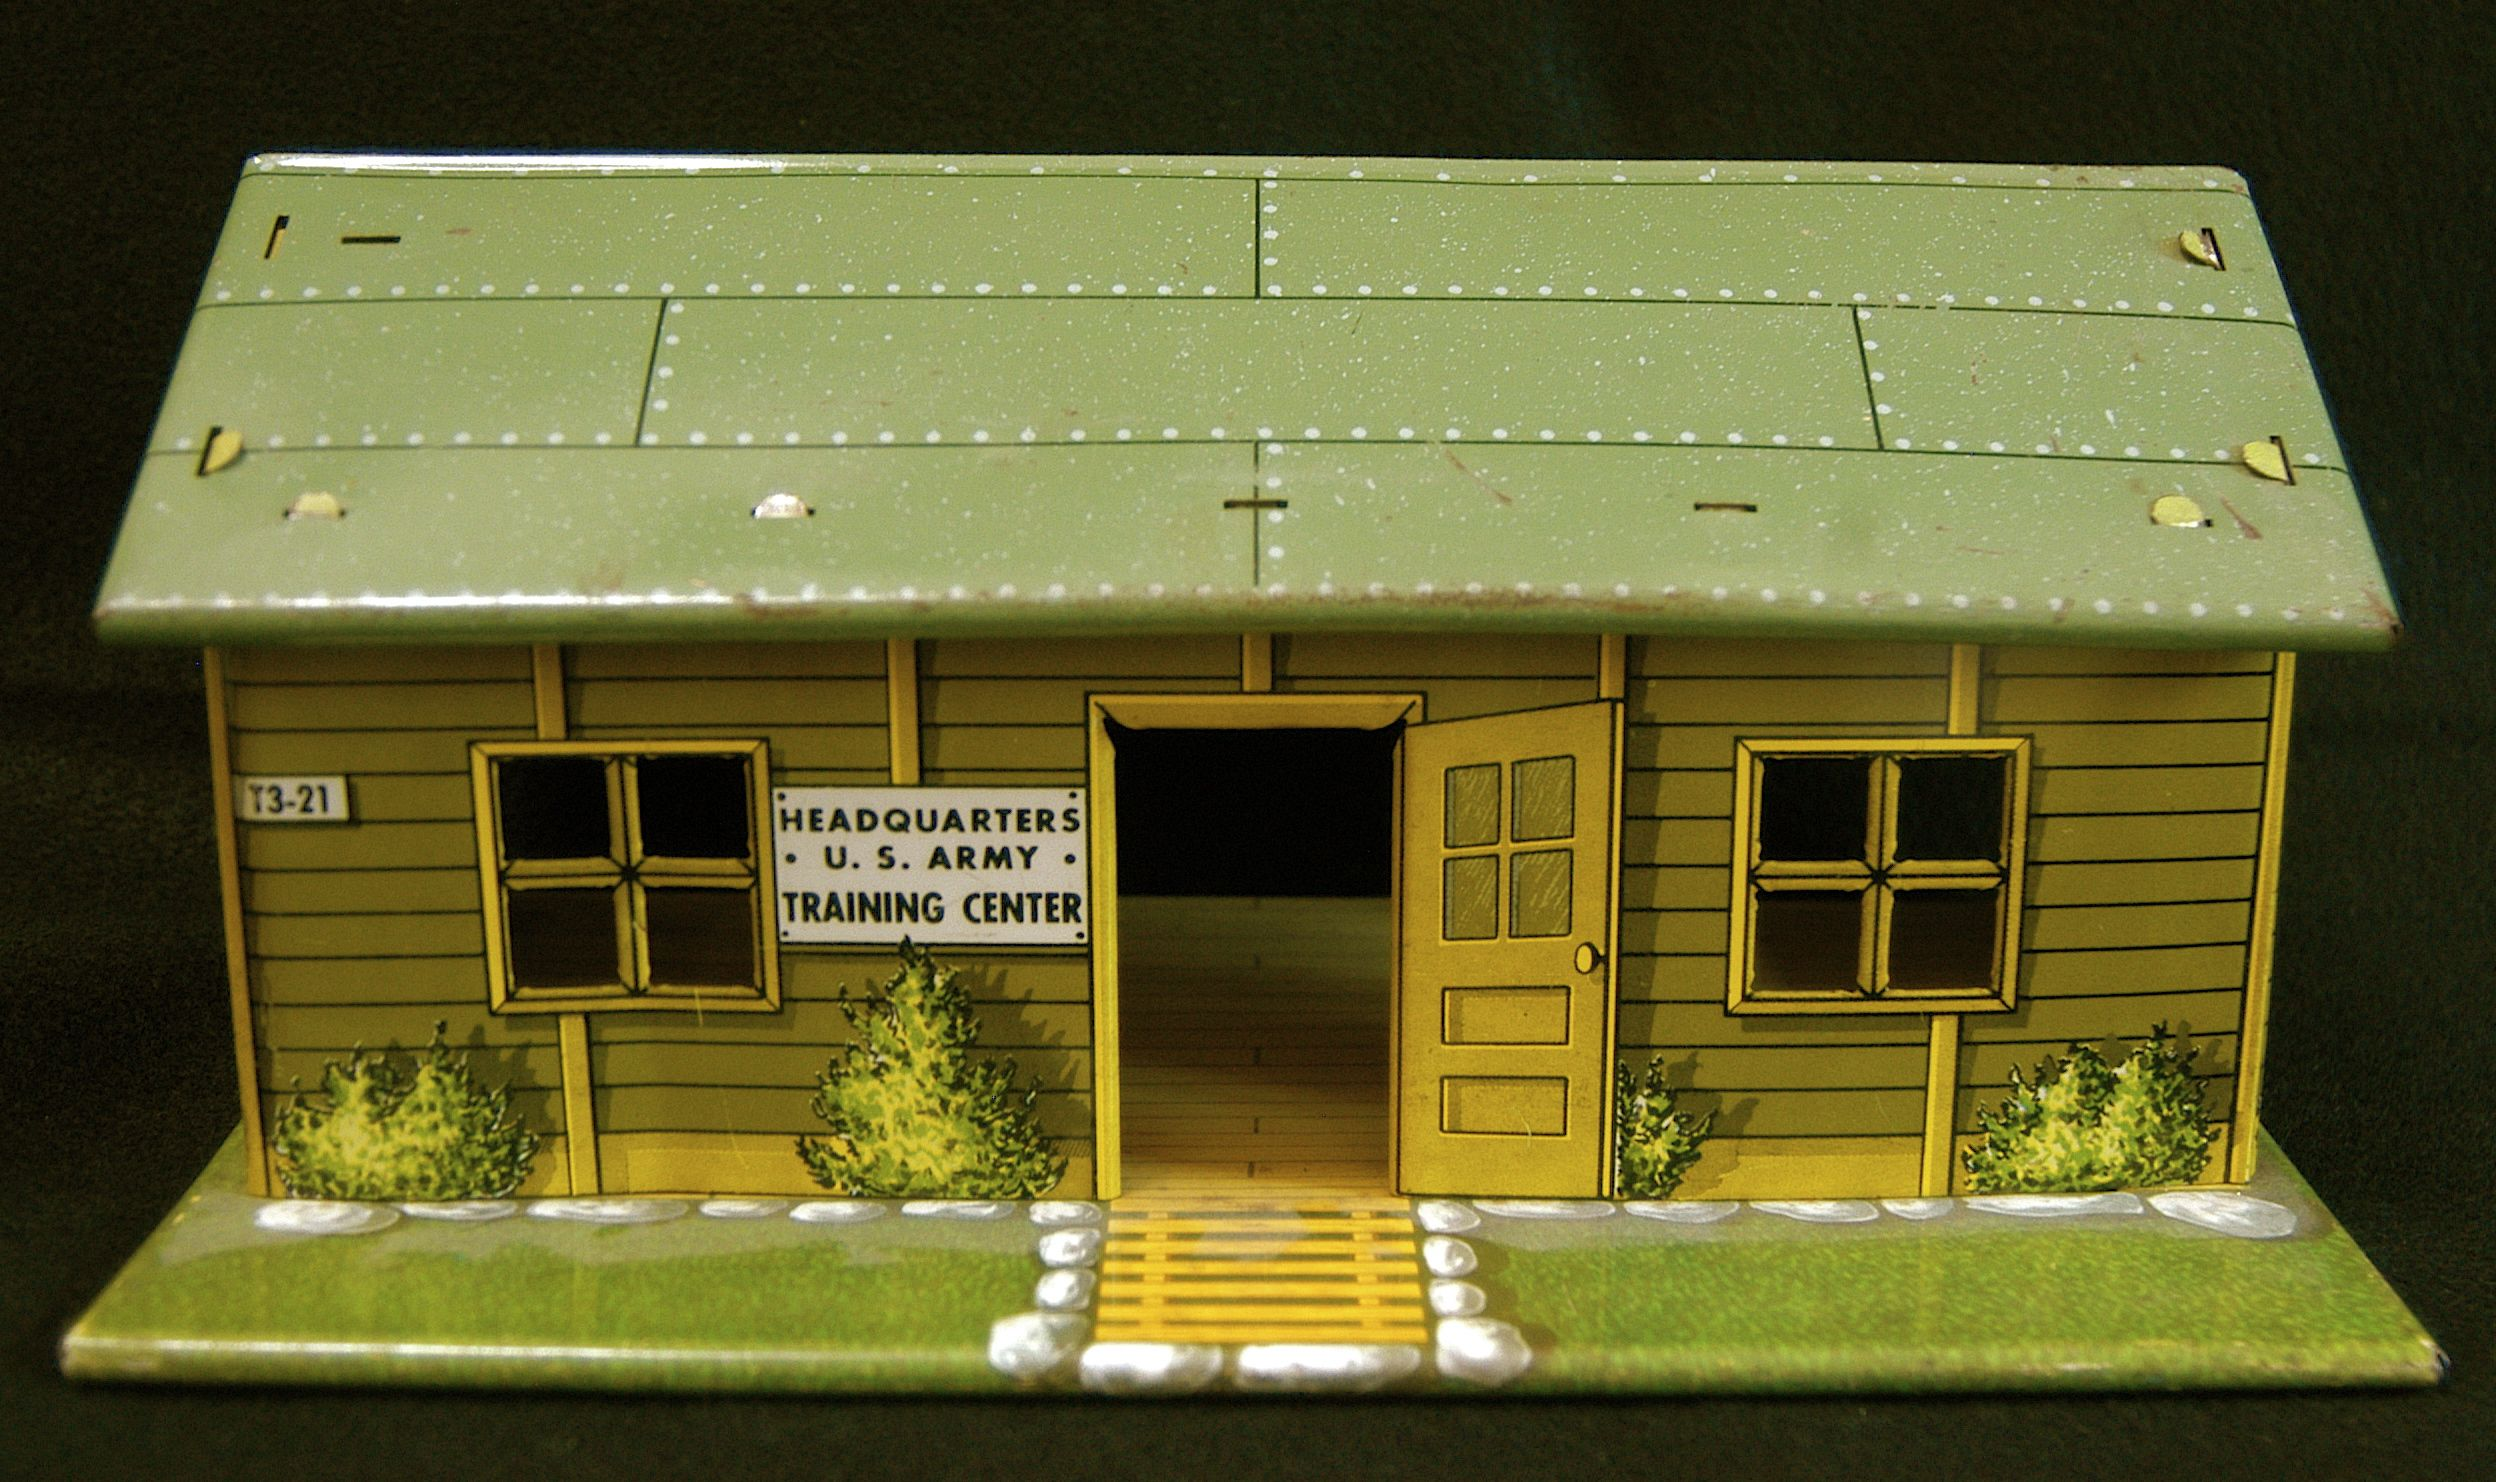 Army Headquarters Headquarters us Army Trading